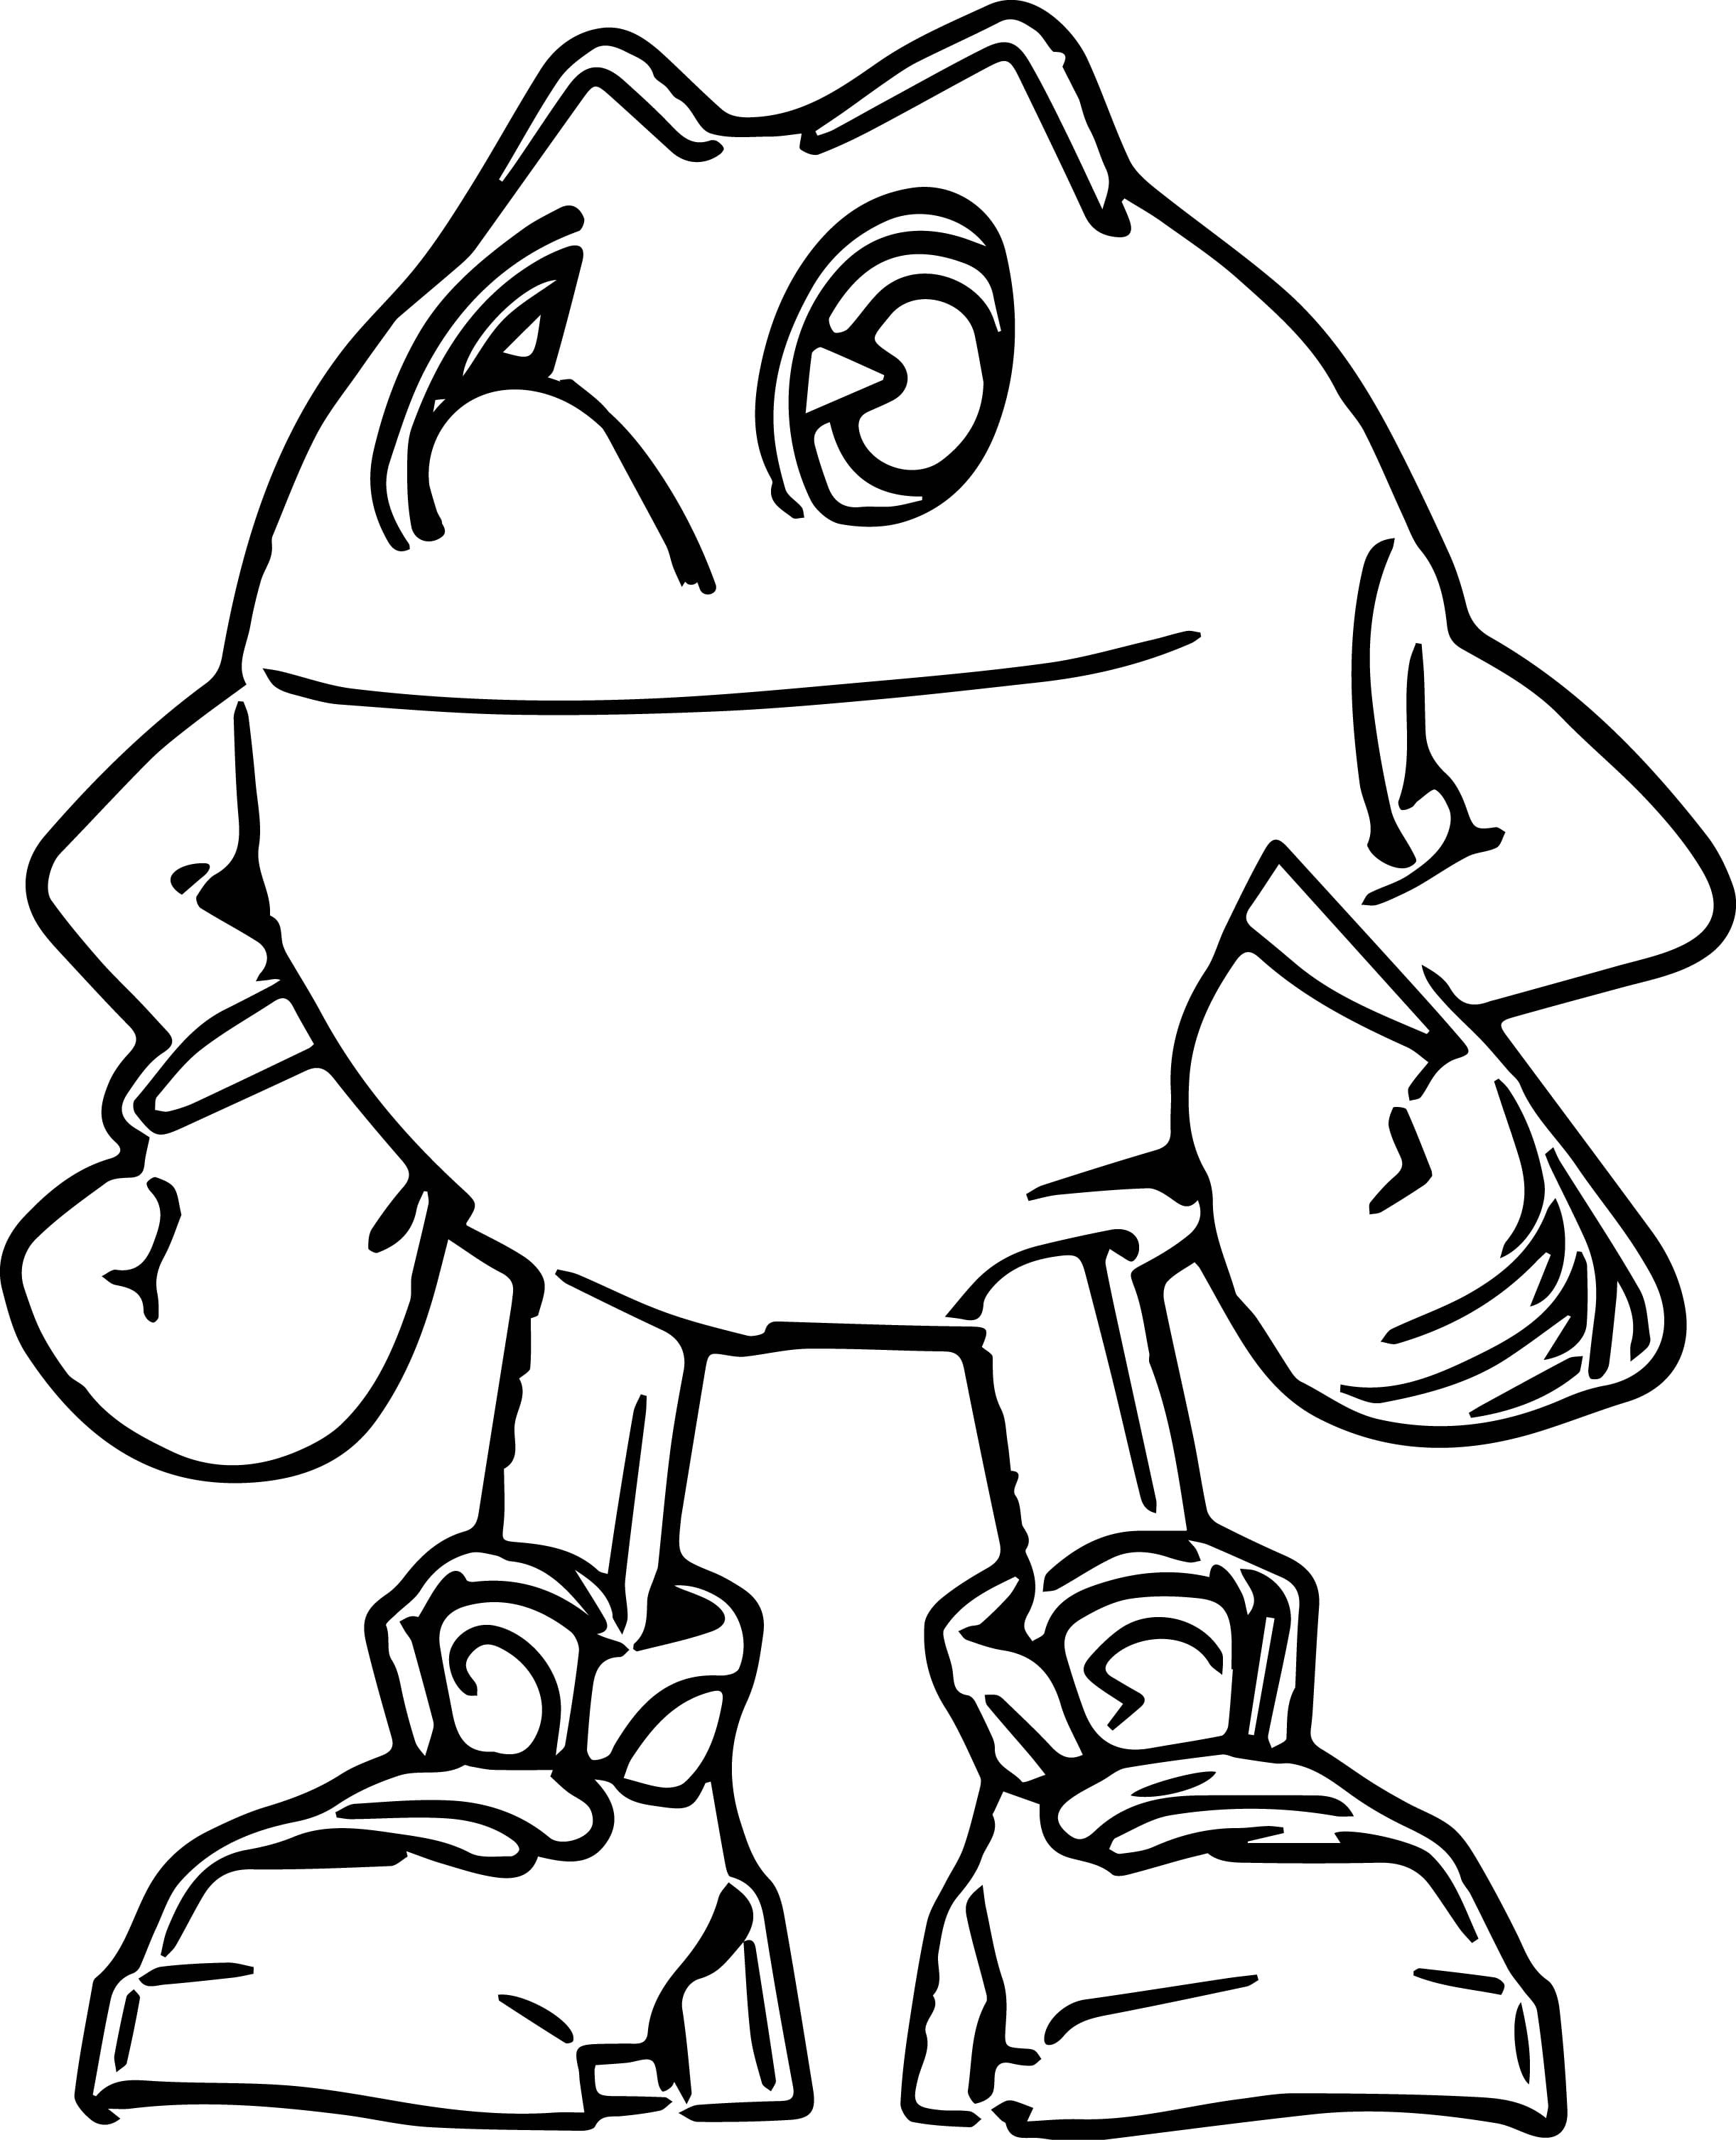 Brilliant Pacman Coloring Page 15 Remodel With Pacman Coloring